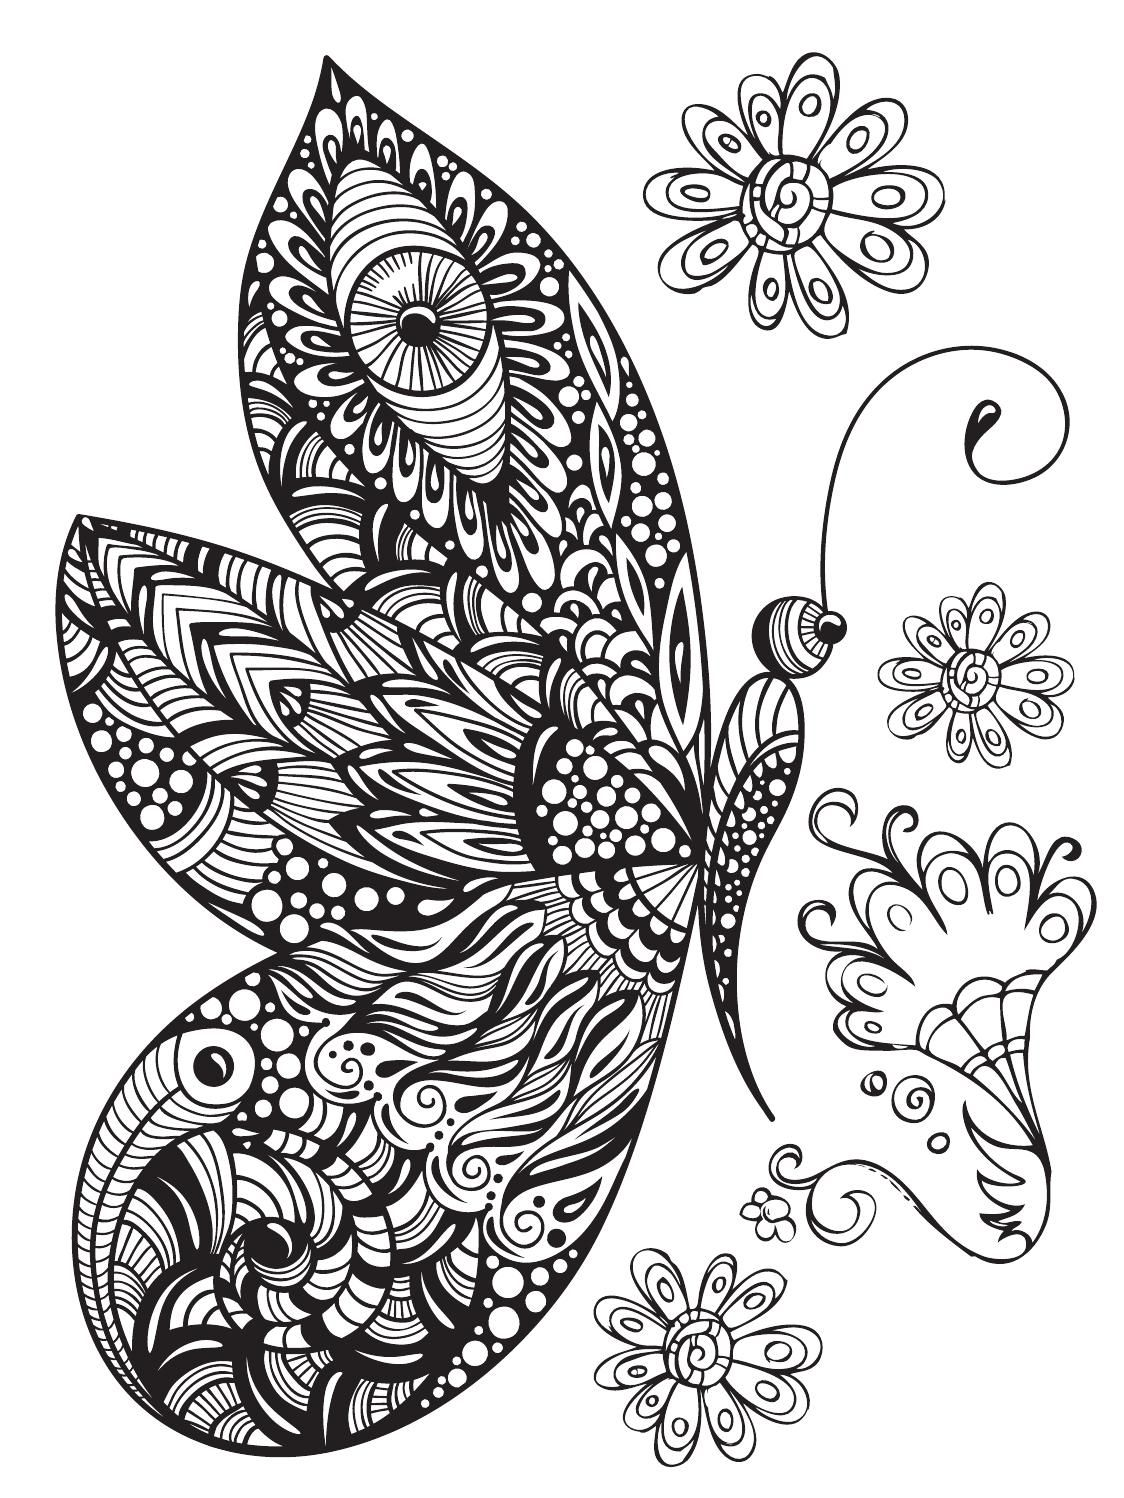 Color Mind Nº2 Butterfly Coloring Page Mandala Coloring Books Coloring Pictures [ 1498 x 1124 Pixel ]